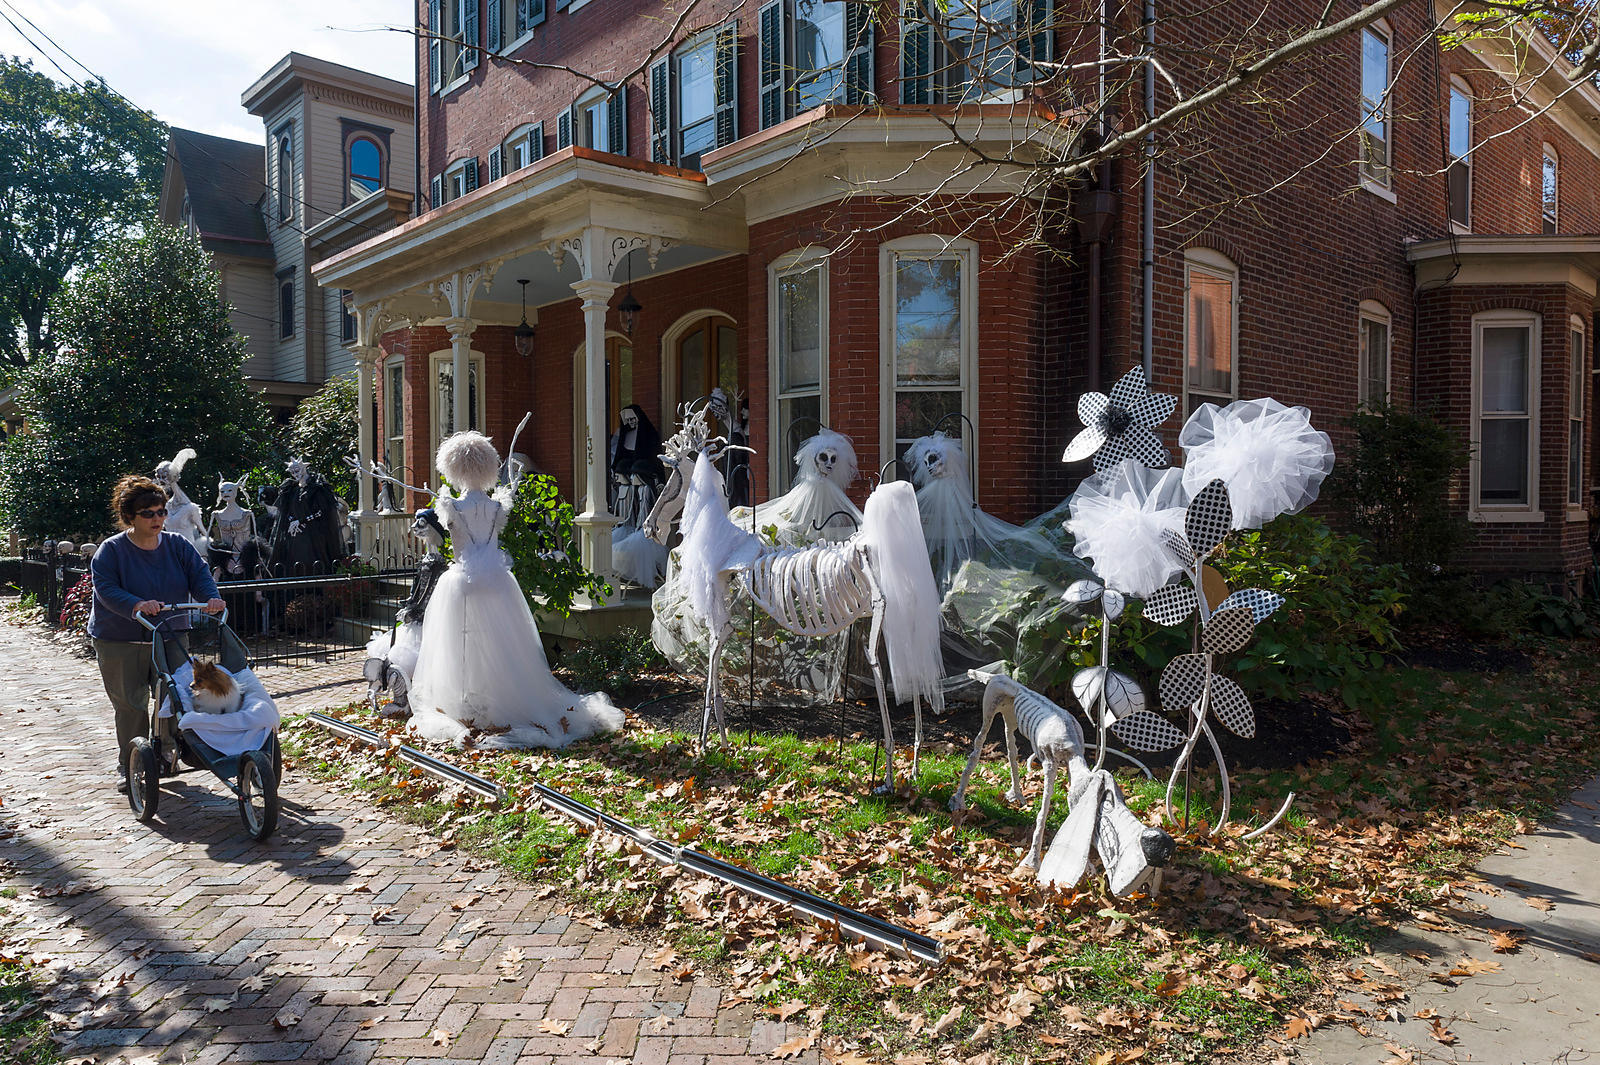 Scary outdoor halloween decorations to make - Halloween In Lambertville